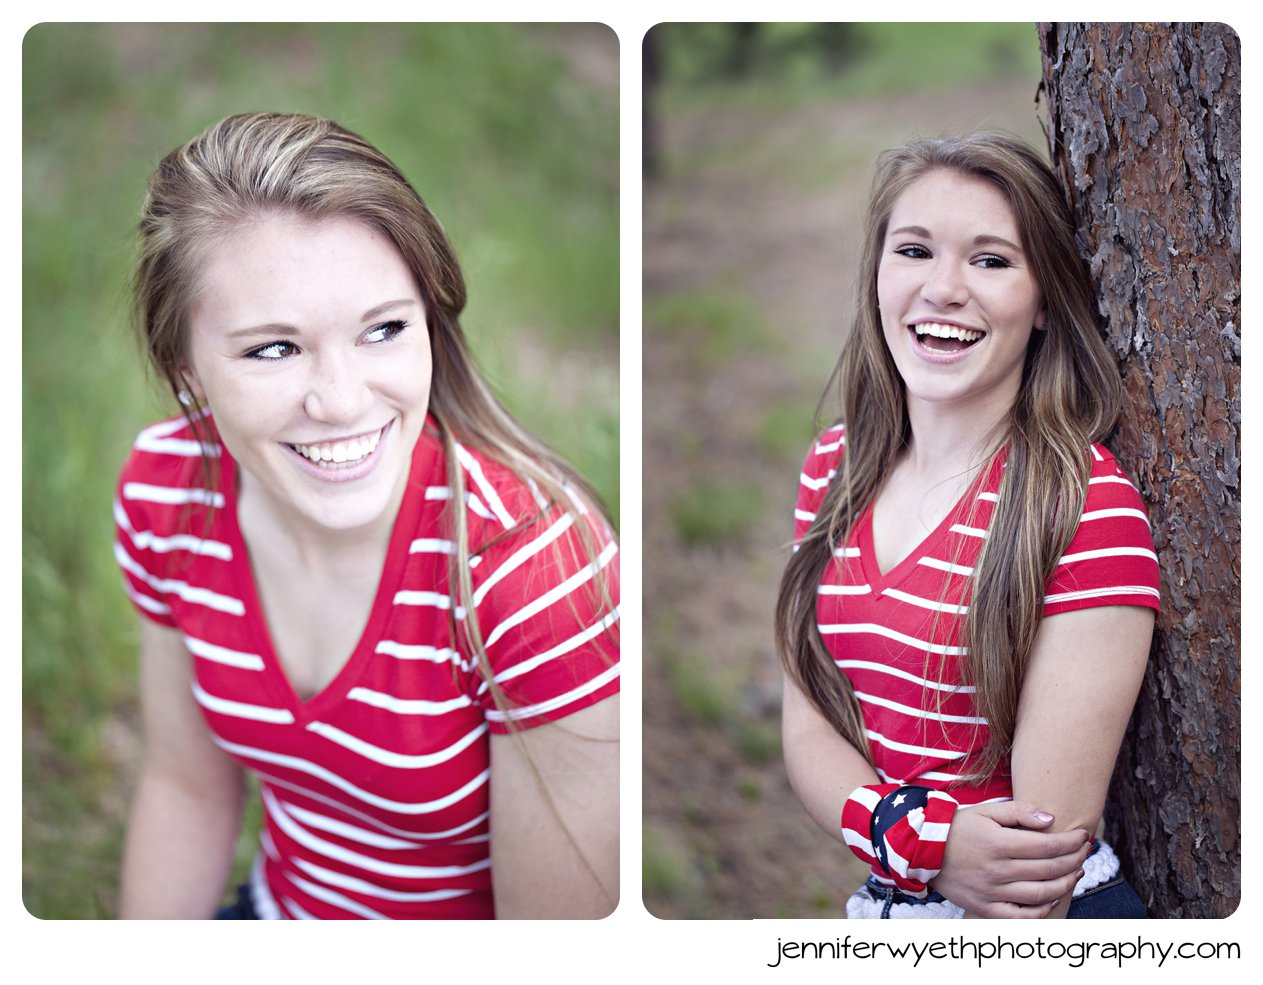 long brown hair and bandana on senior girl leaning against tree and smiling at friends